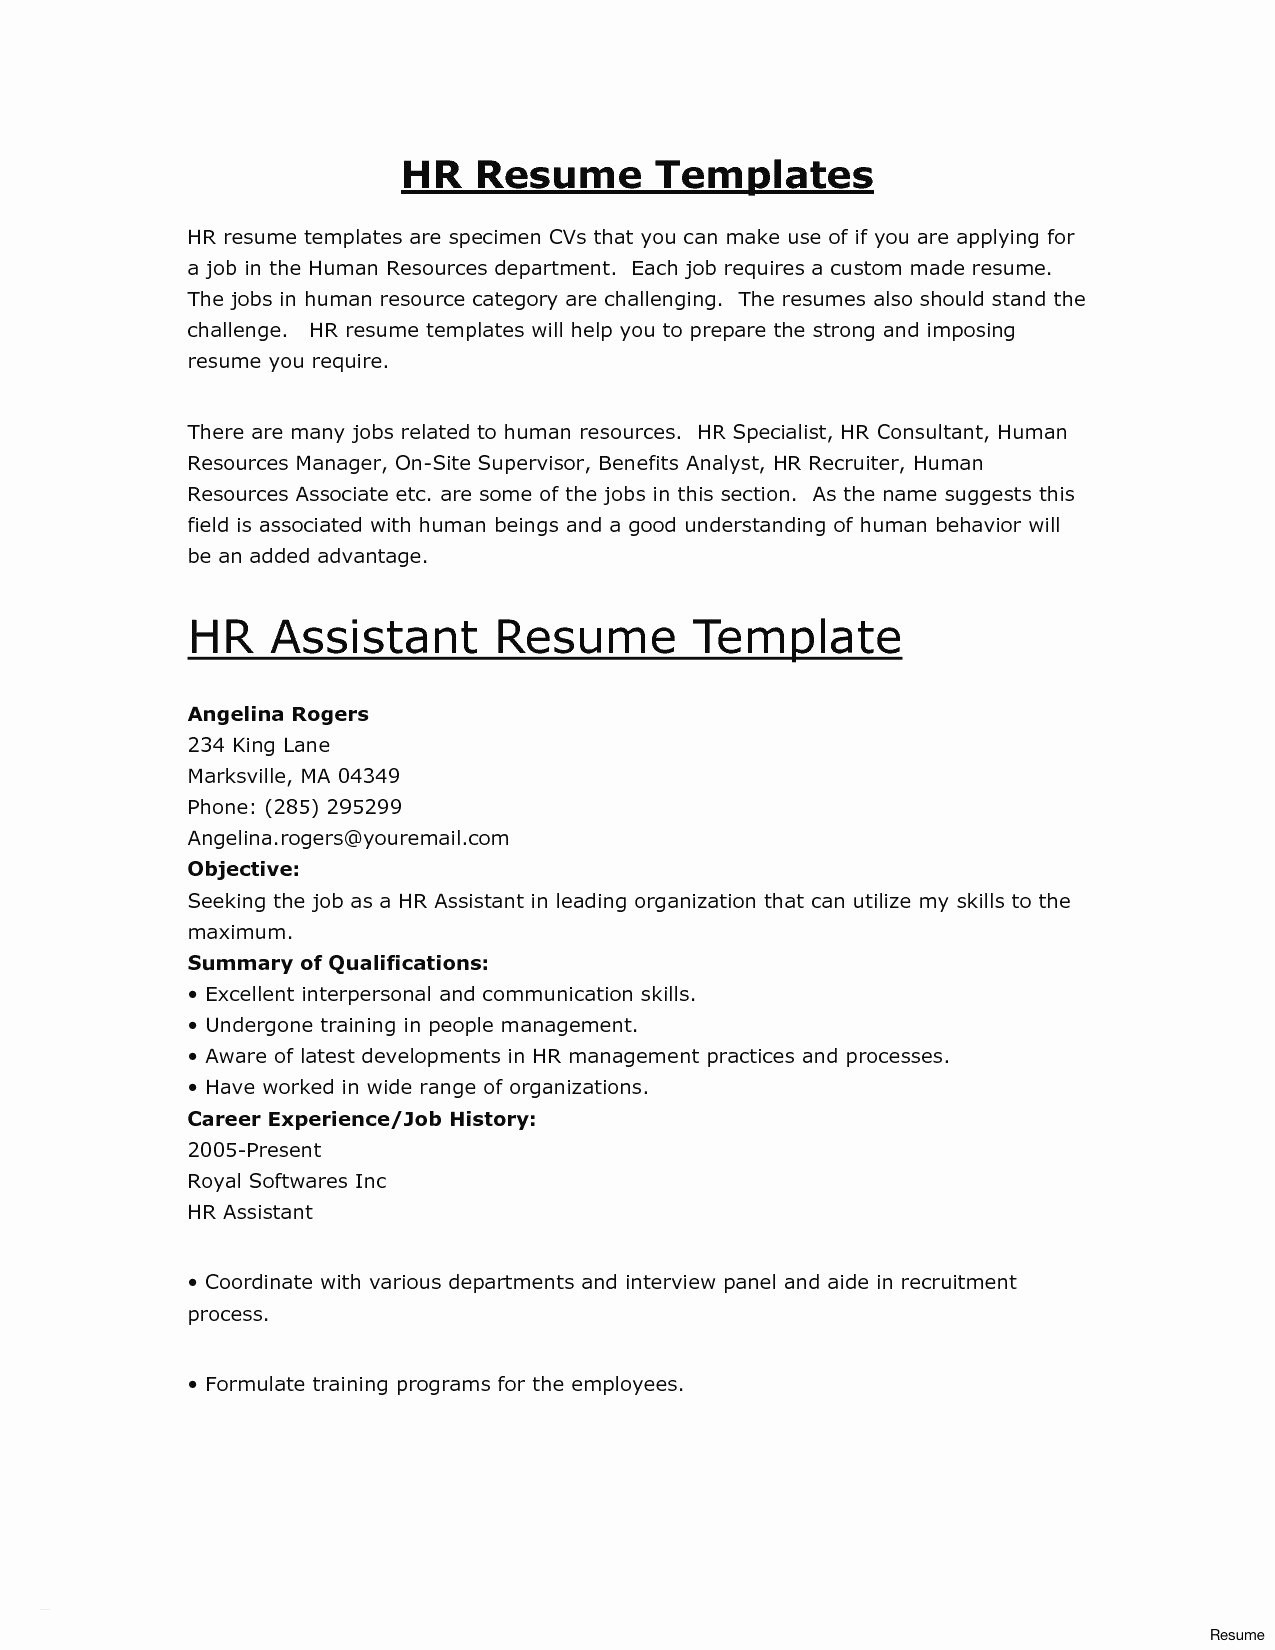 Resume Template for Hvac Technician - Luxury Word 2013 Resume Templates